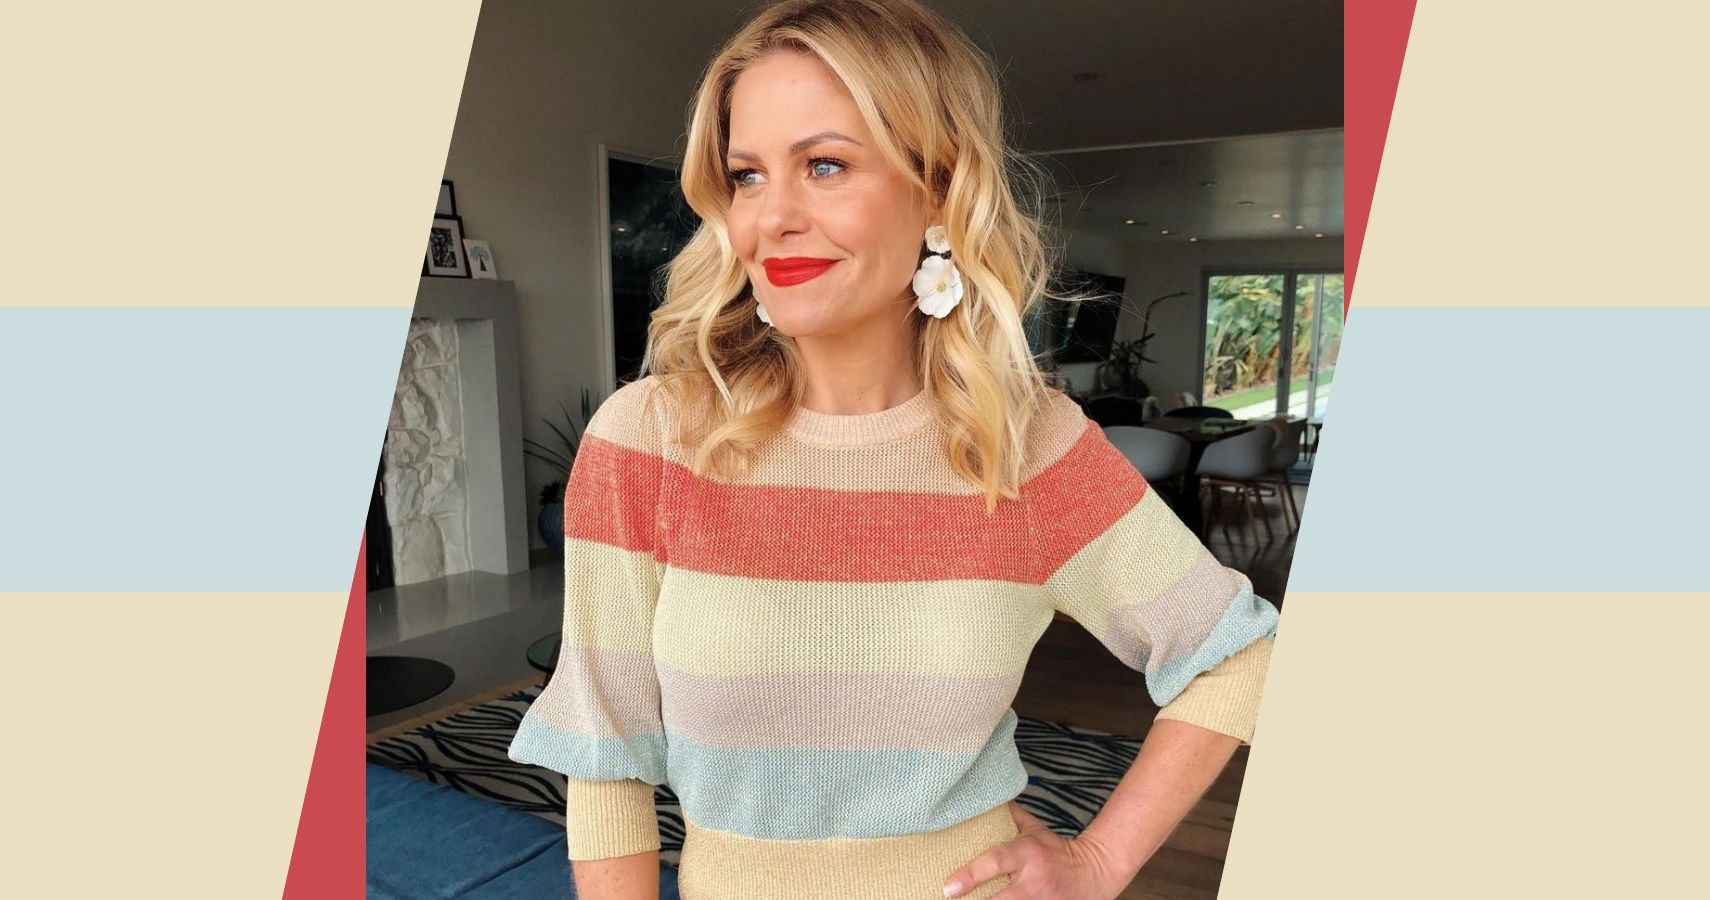 Full House: 7 Facts You Didn't Know About Candace Cameron Bure